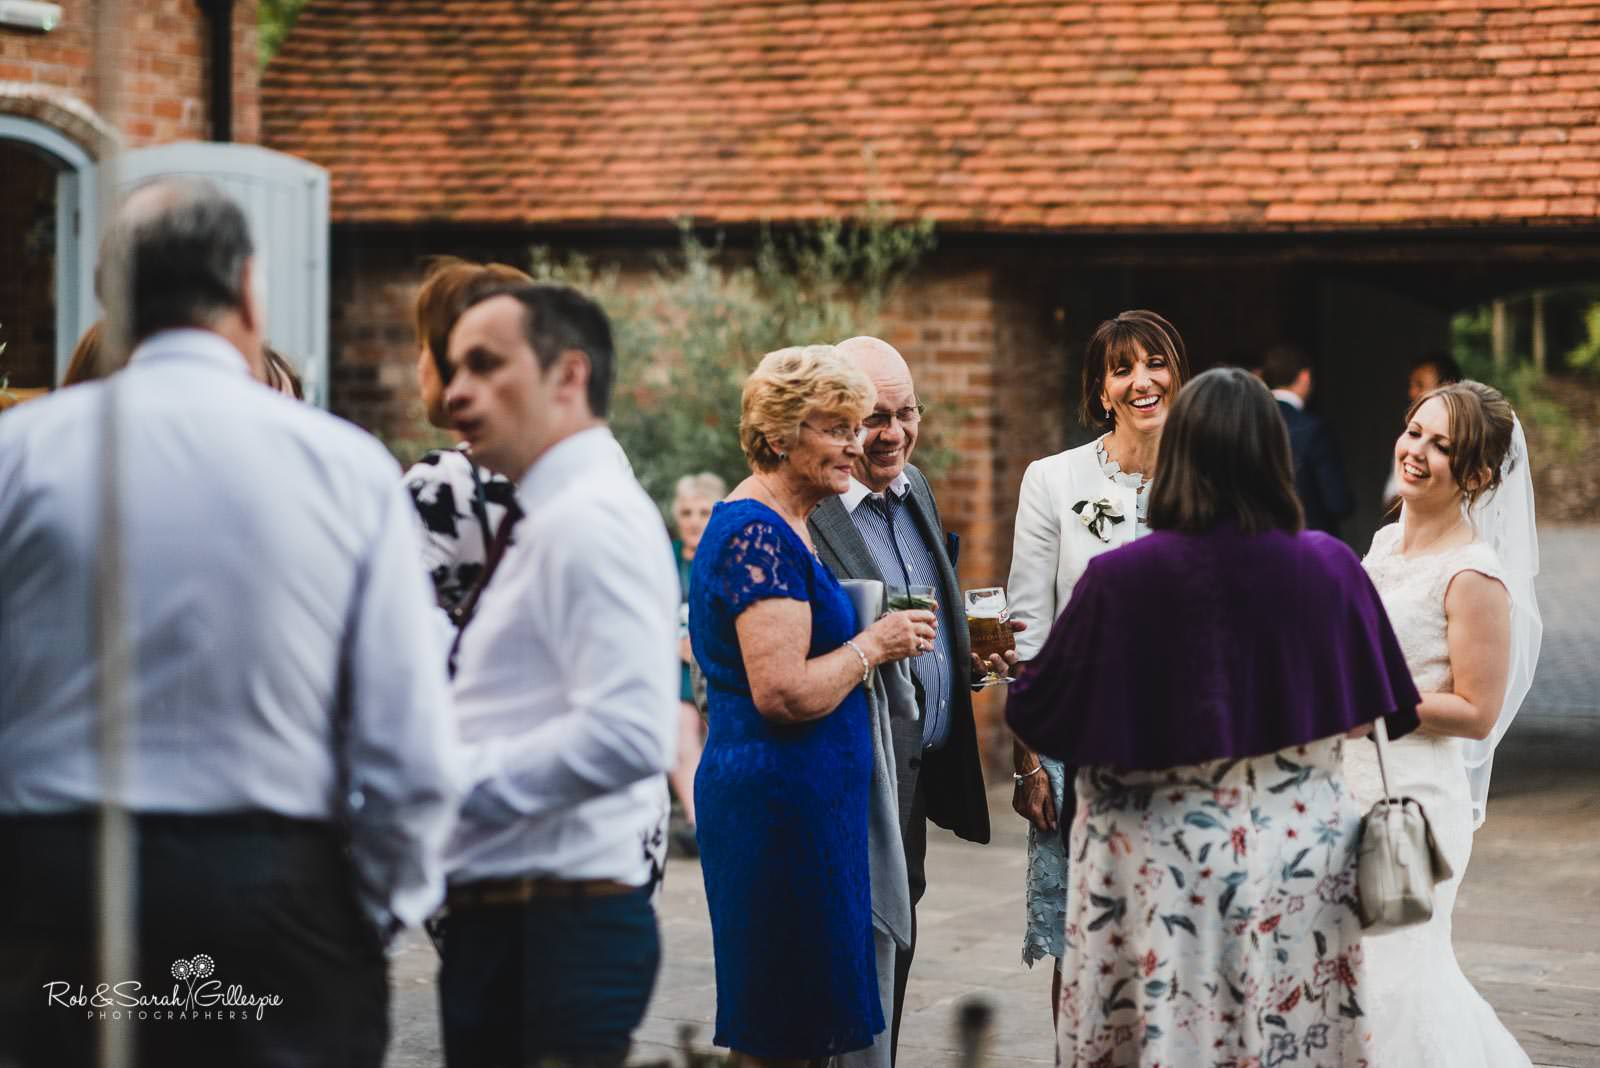 Bride and guests chatting at Swallows Nest Barn